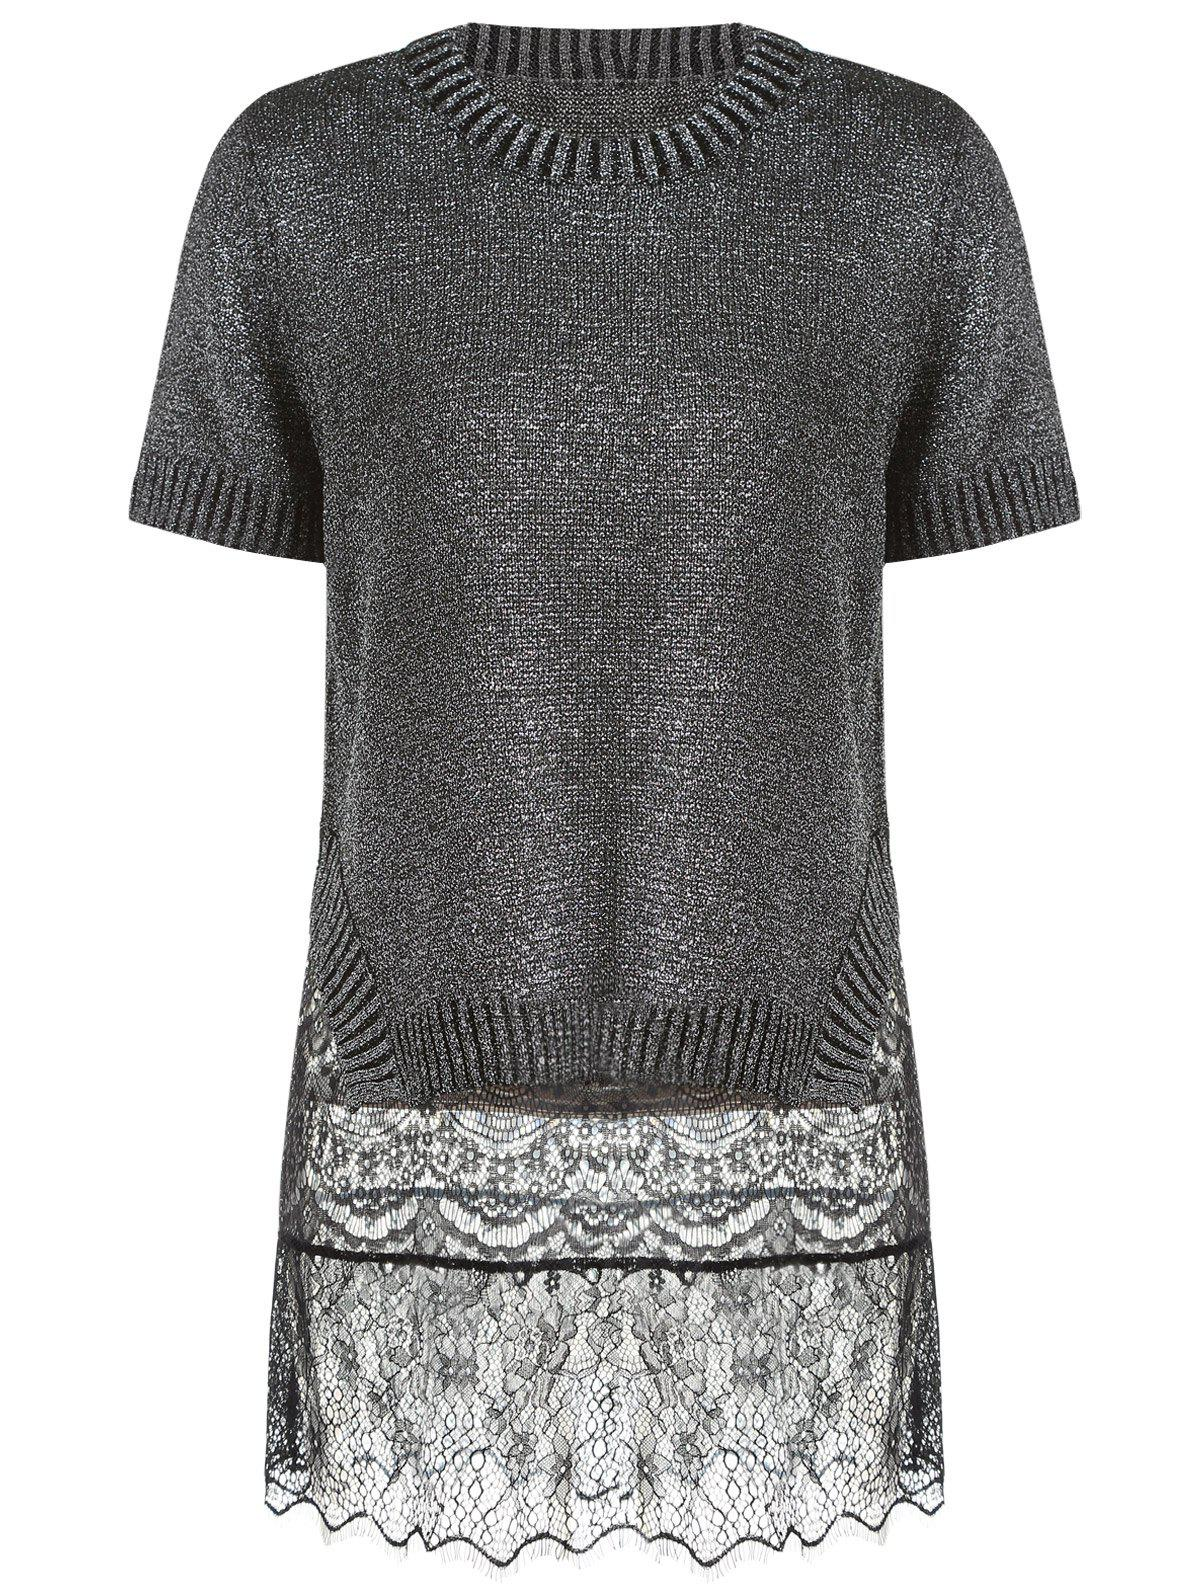 Trendy Women's Short Sleeve Furcal Sweater + Mini Lace Sundress Twinset - ONE SIZE(FIT SIZE XS TO M) BLACK